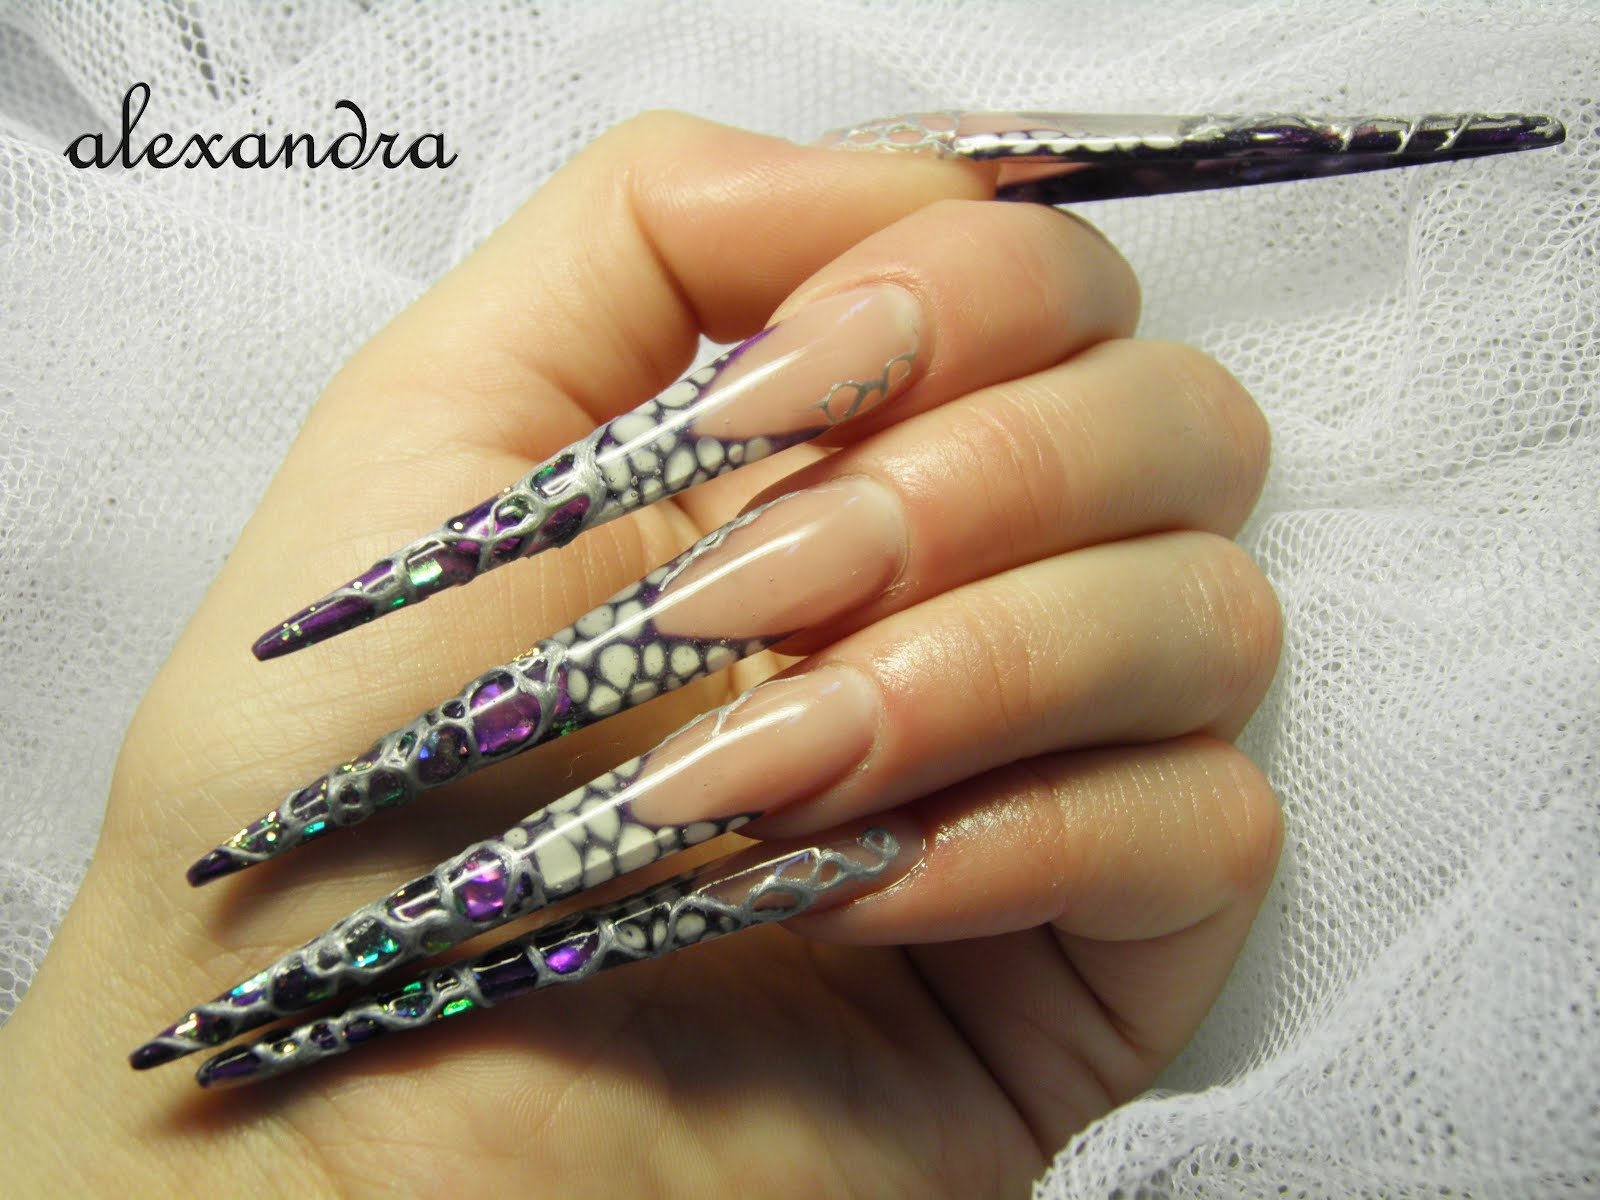 Nail art: Stiletto nail art